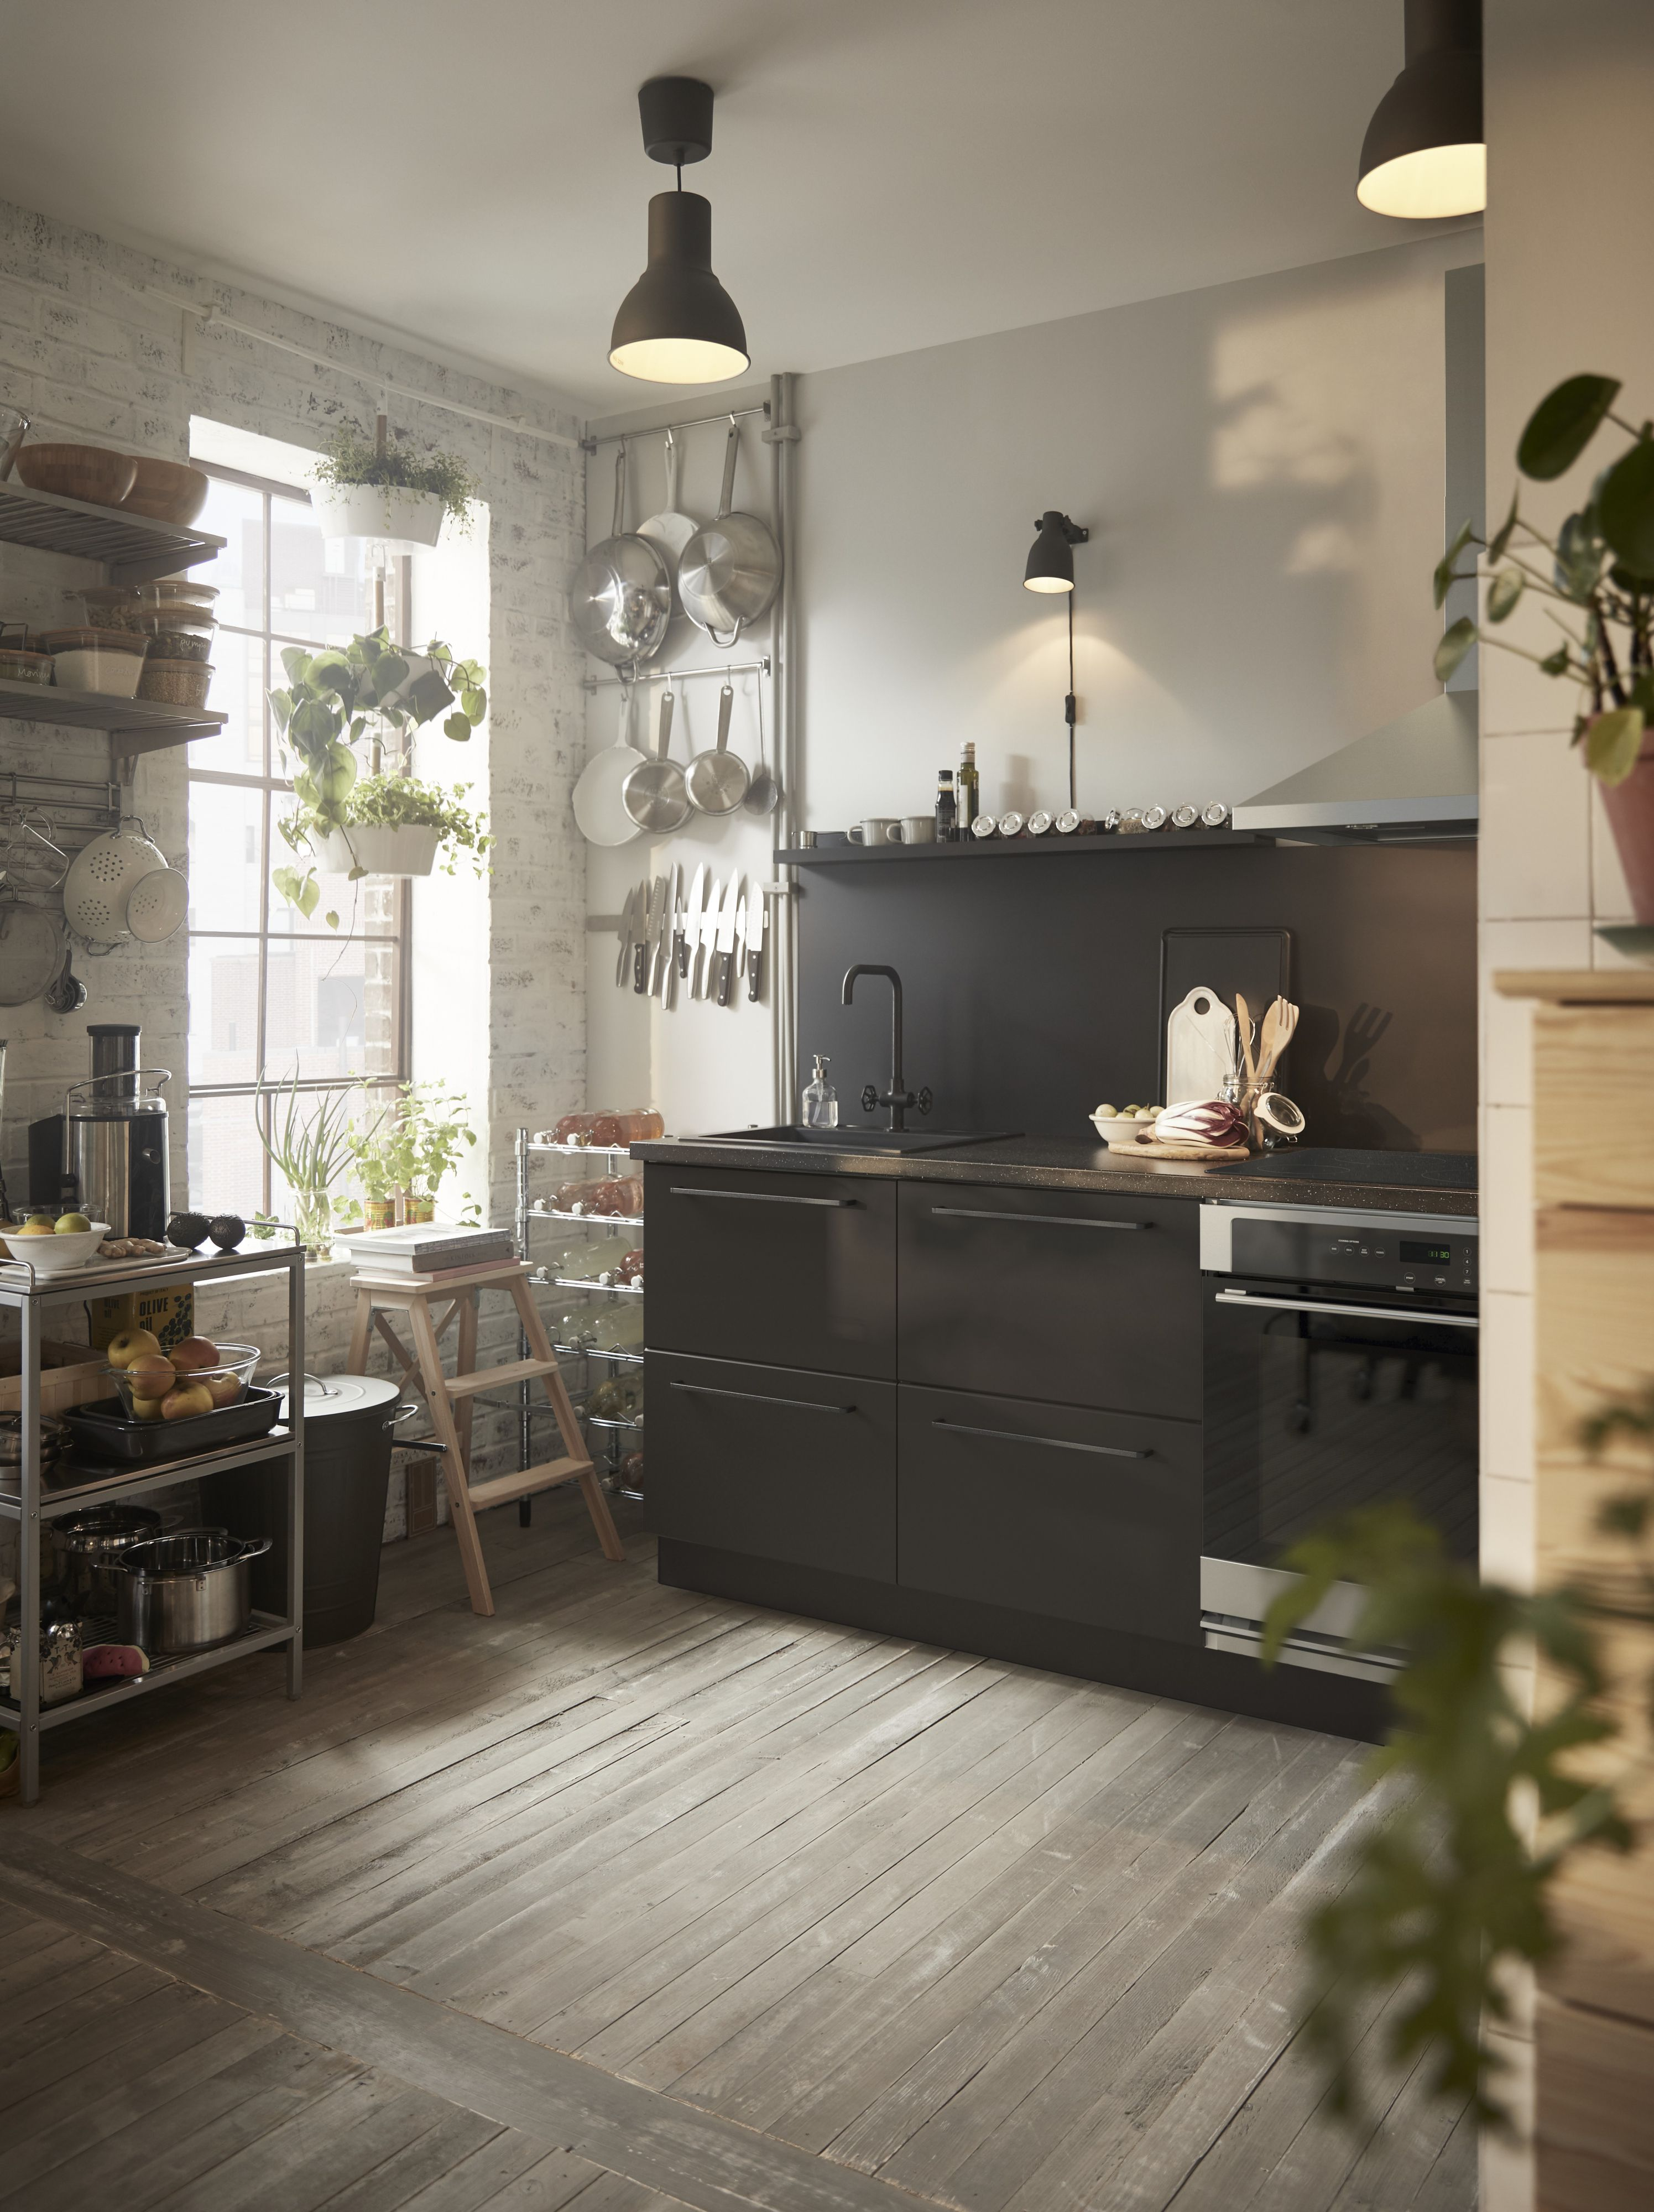 These Sektion Kungsbacka Cabinets Can Give Your Kitchen An Environmentally Friendly Feel Because They Re Made From Recycled Ikea Inspiration Ikea Catalog Home